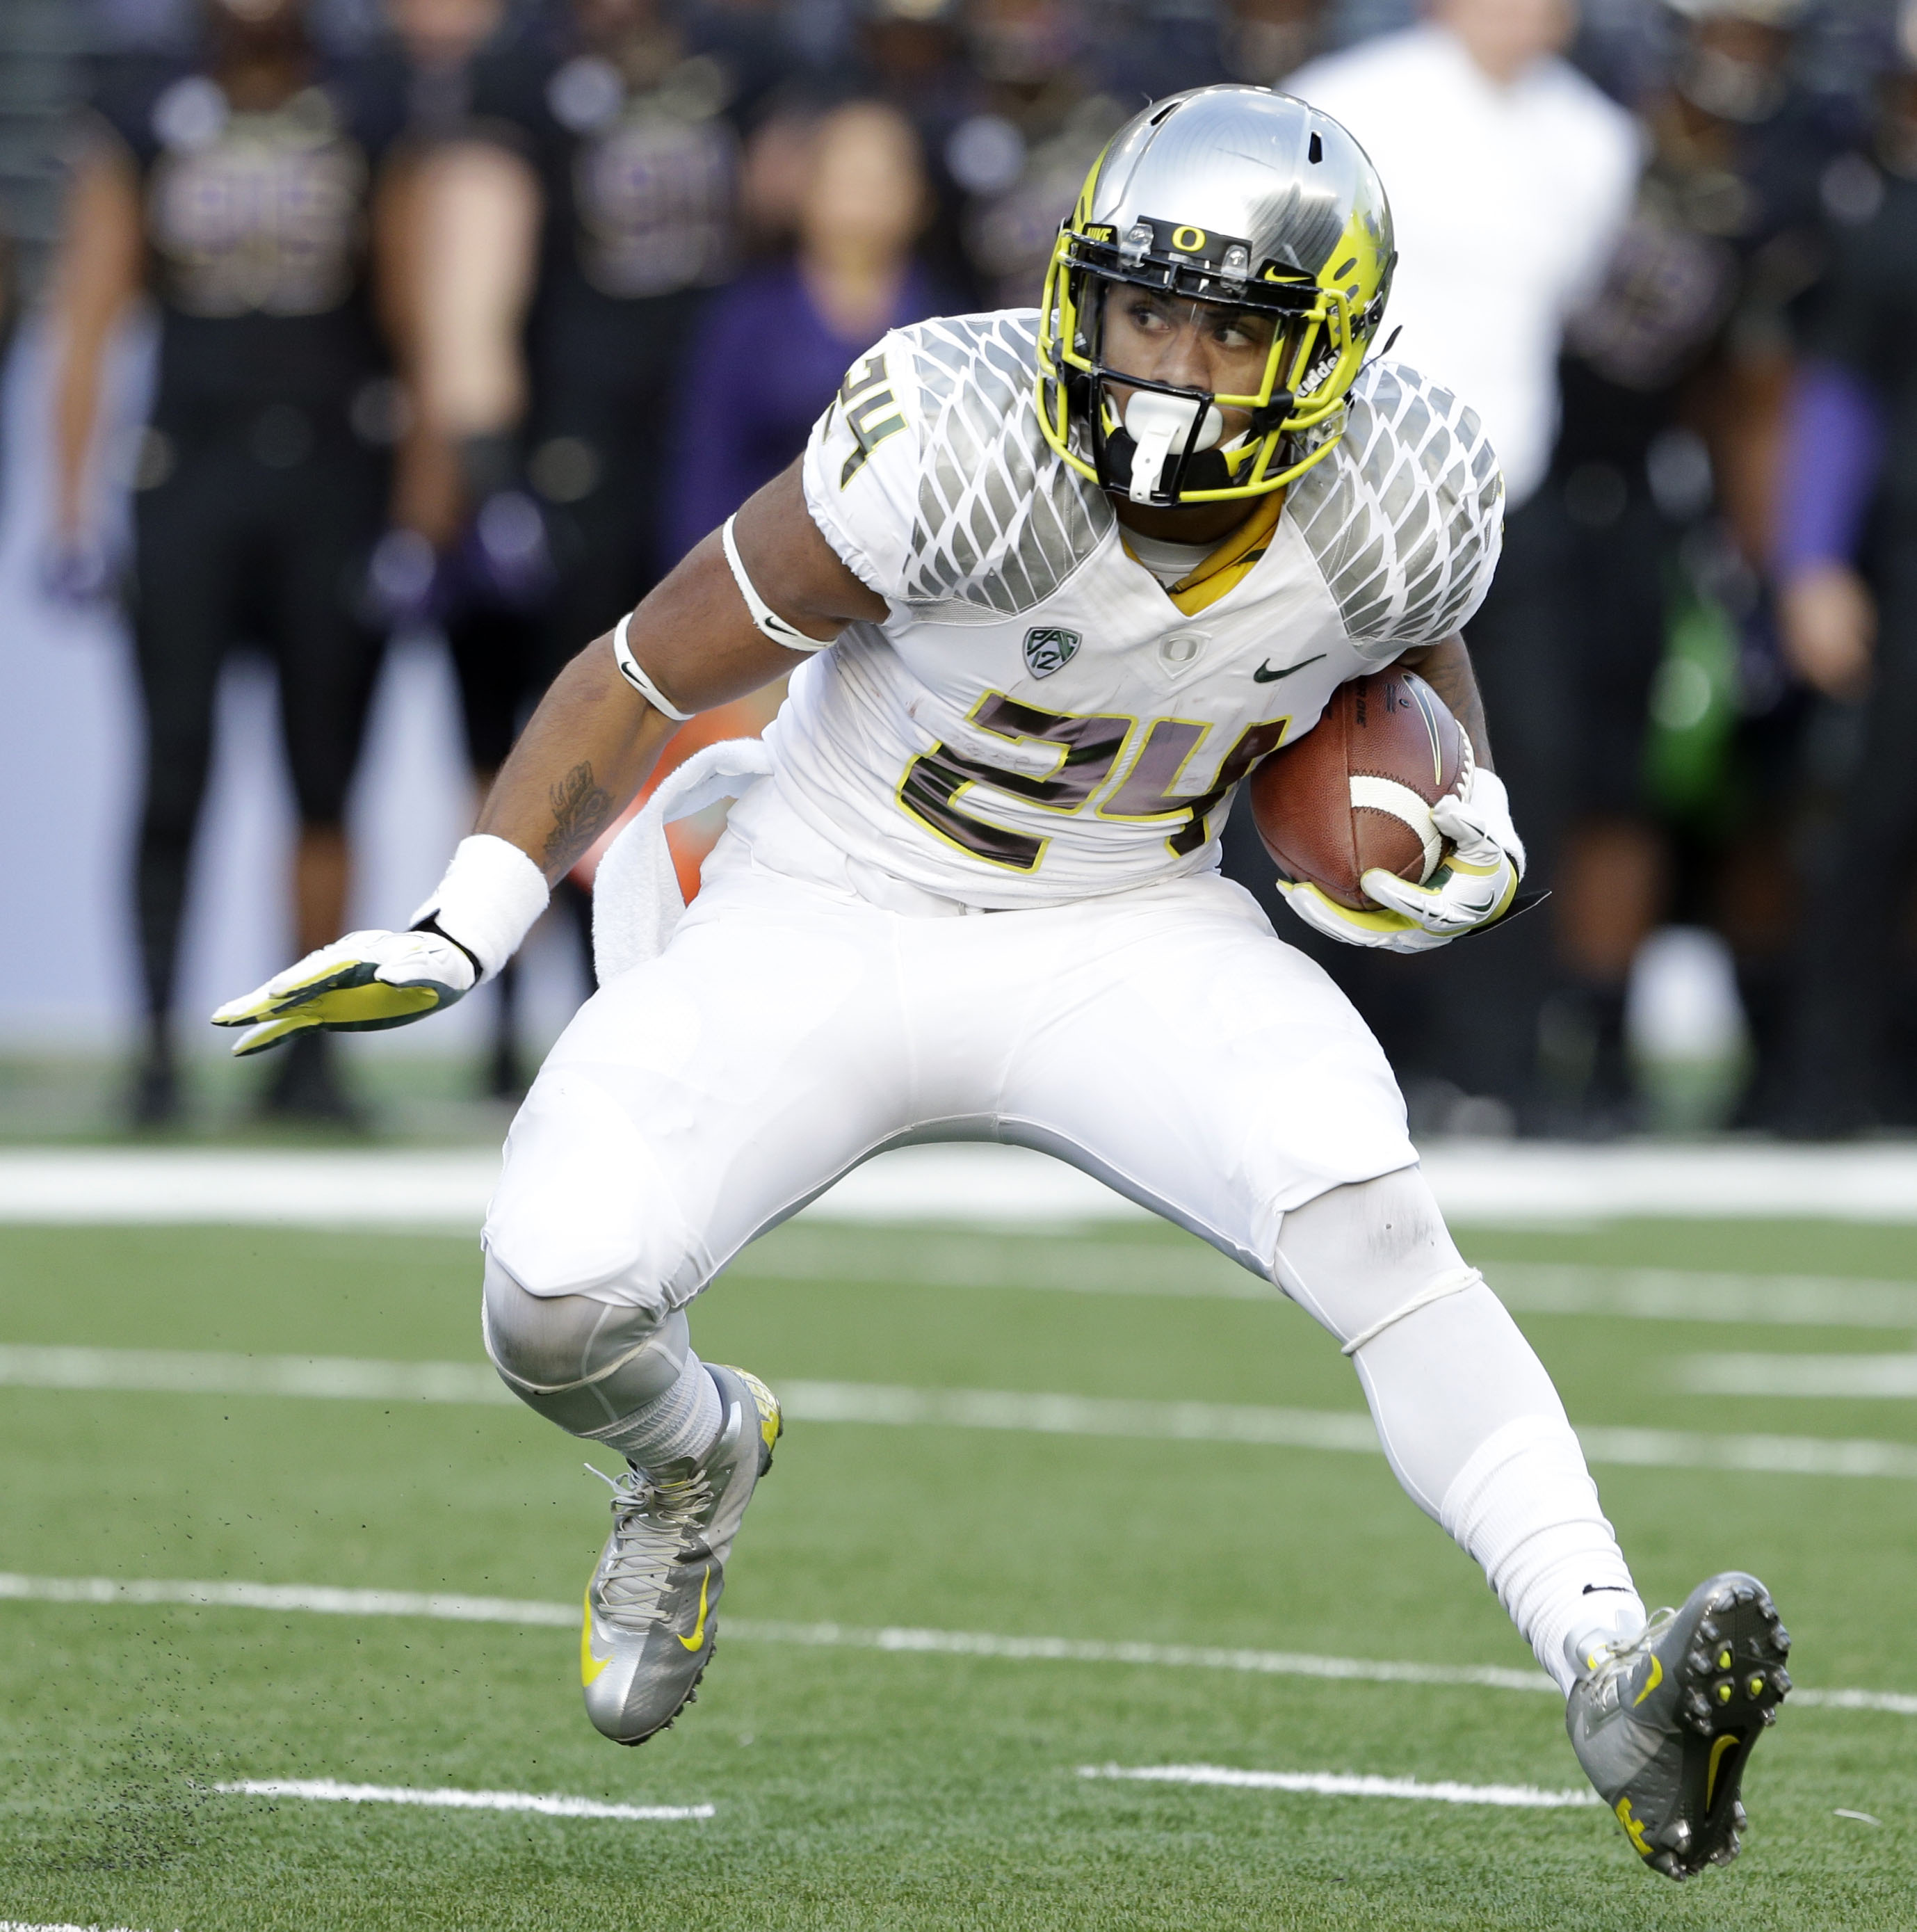 File- This Oct. 12, 2013, file photo shows Oregon's Thomas Tyner in action against Washington in the second half of an NCAA college football game in Seattle. Tyner is out for fall camp and he could miss the season after shoulder surgery. Coach Mark Helfri